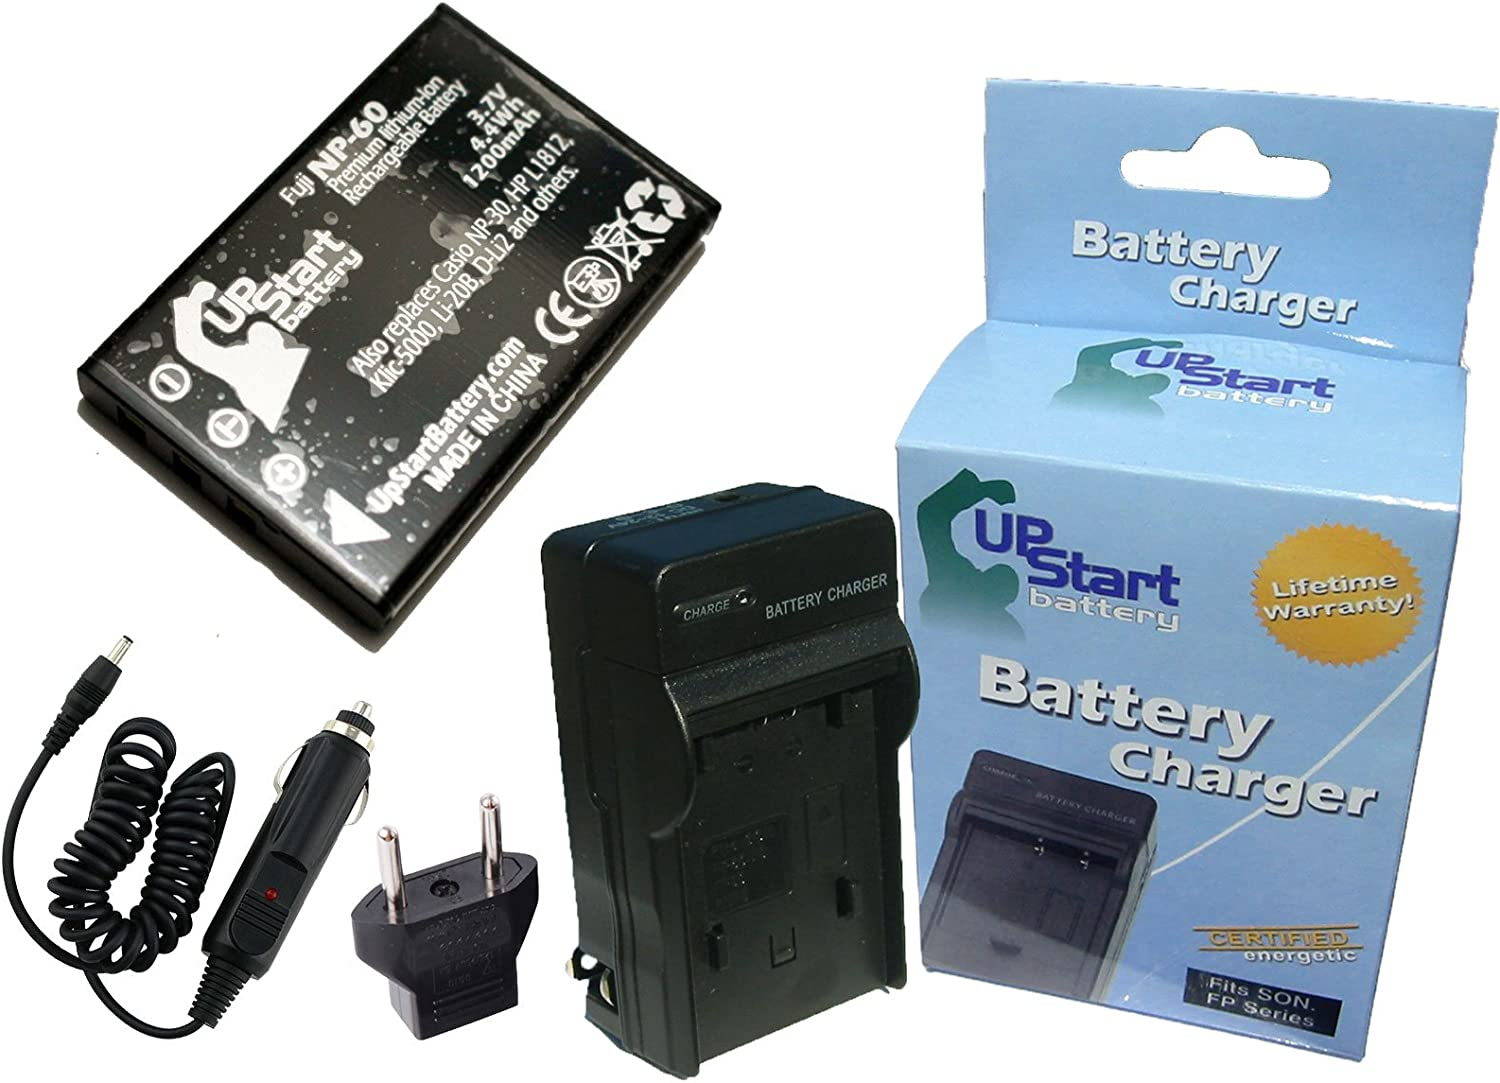 Replacement for HP Photosmart R967 Battery and Charger with Car Plug and EU Adapter - Compatible with HP L1812A Digital Camera Batteries and Chargers (1200mAh 3.7V Lithium-Ion)